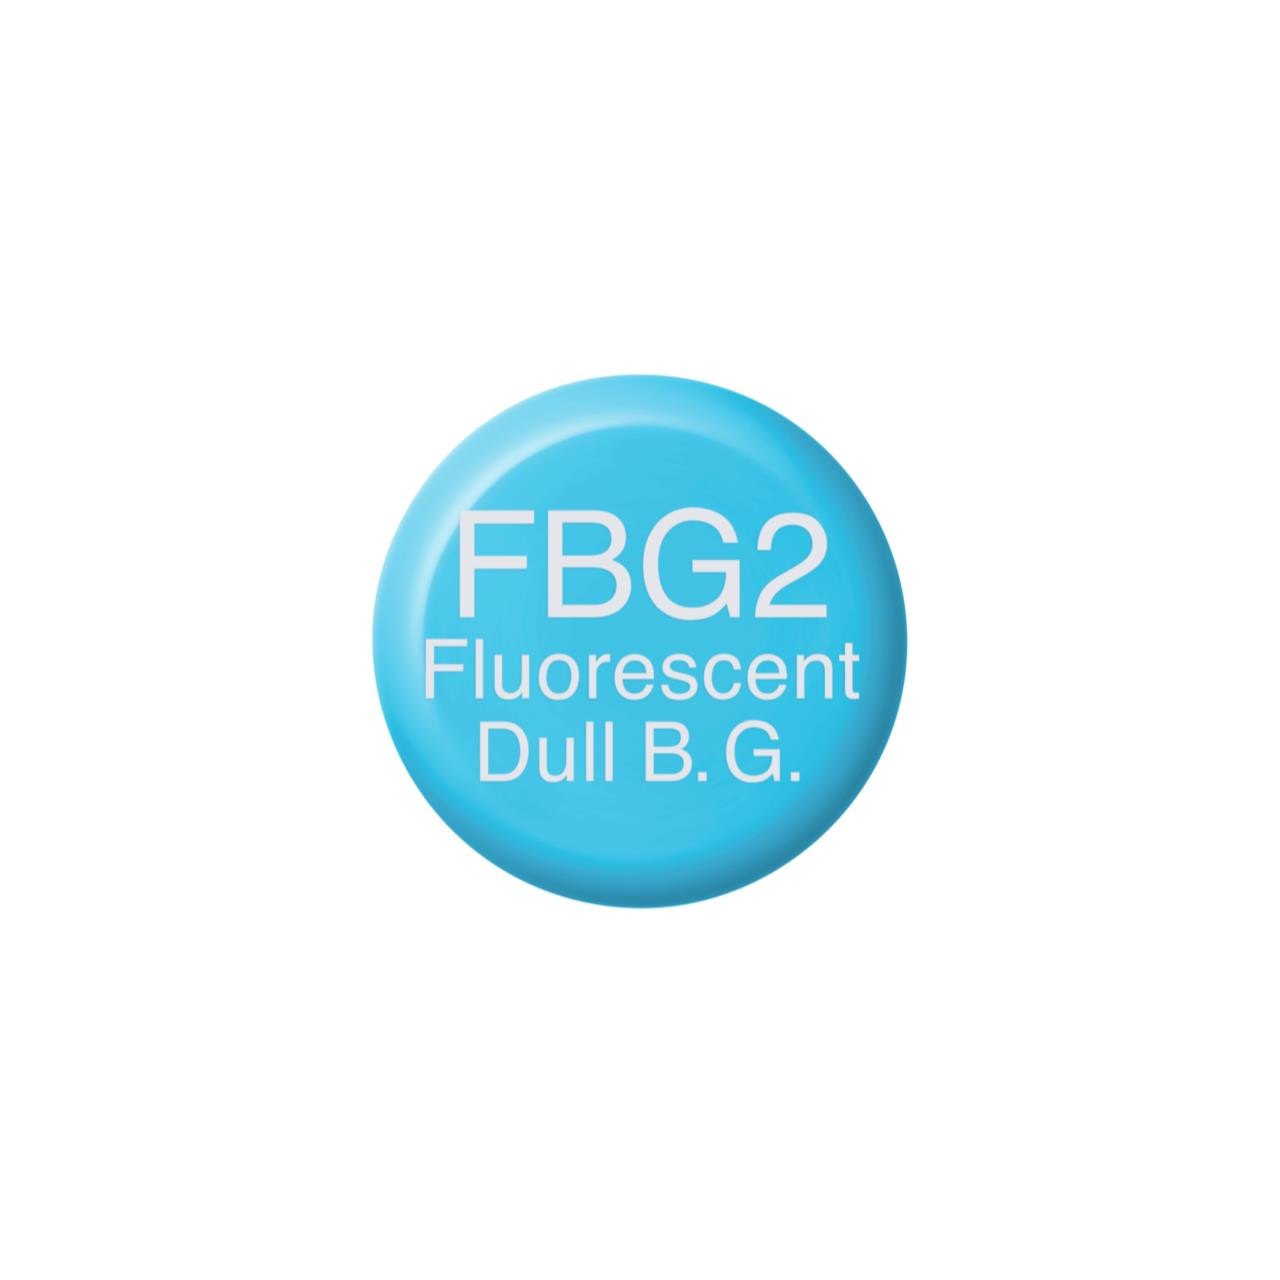 FBG2 Fluorescent Dull Blue Green, Copic Ink - 4511338058886